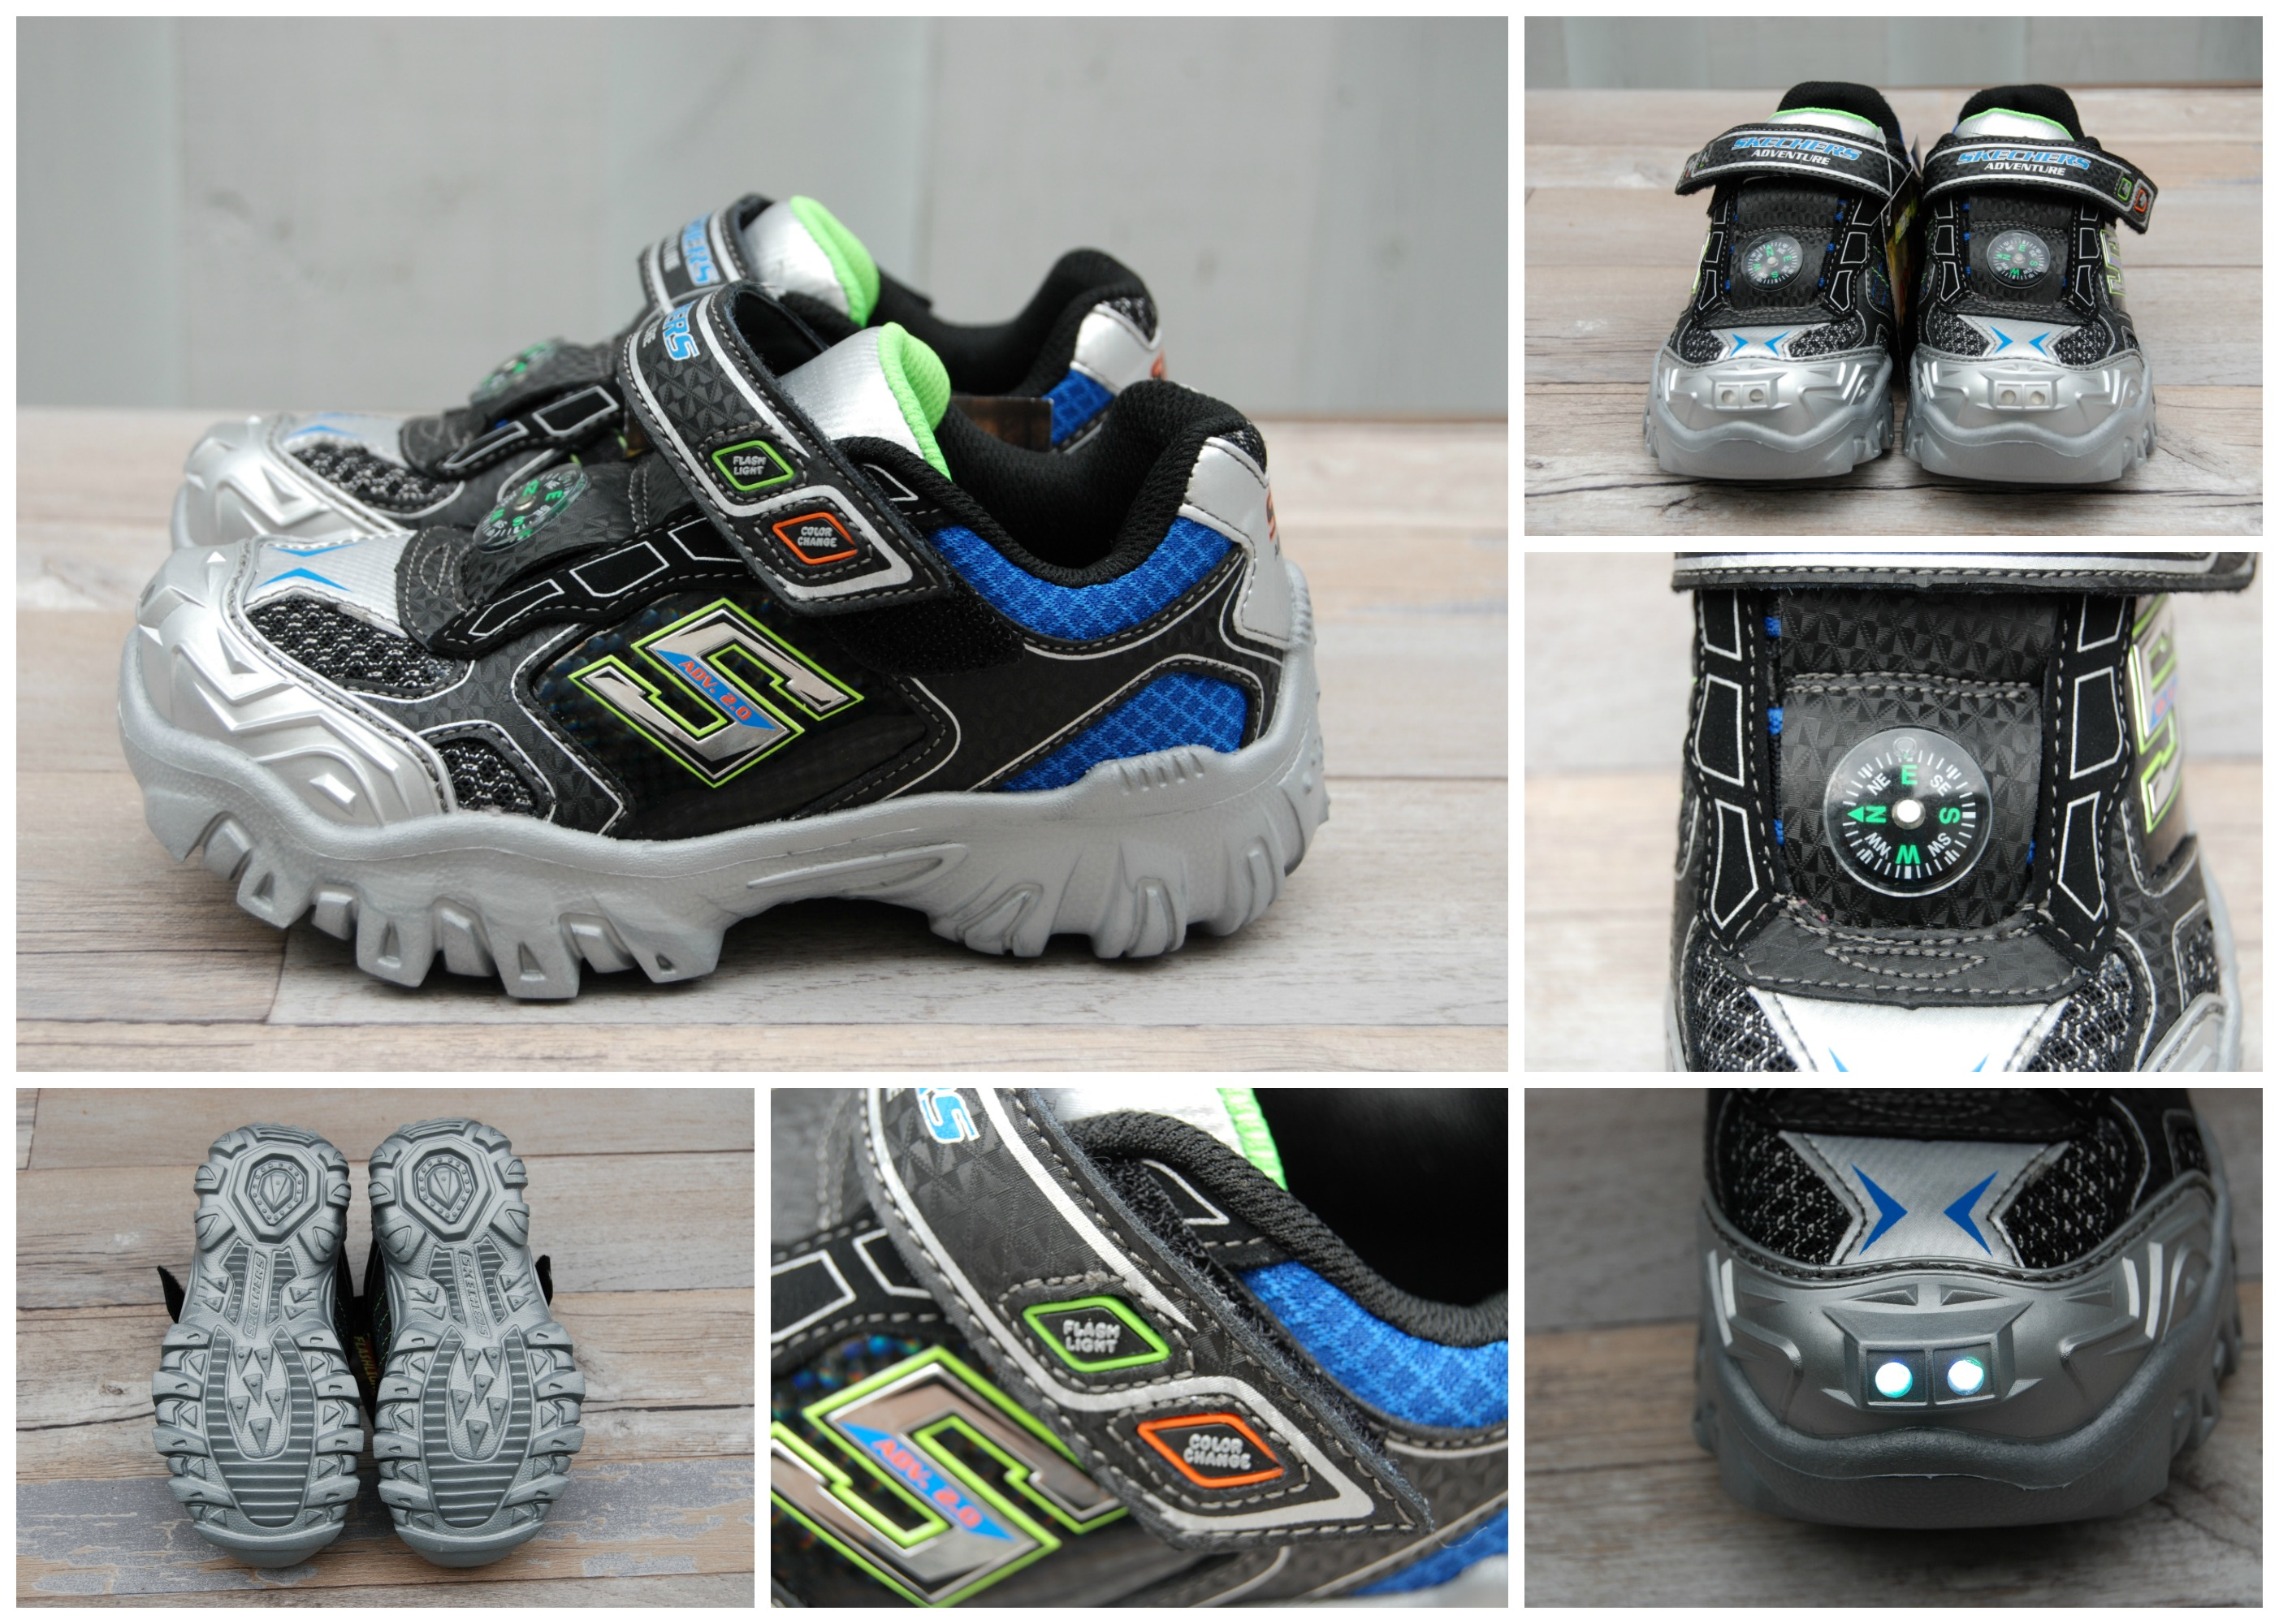 ce8a7b1823af Bringing Cool to Back-to-School with Skechers Shoes  GIVEAWAY ...